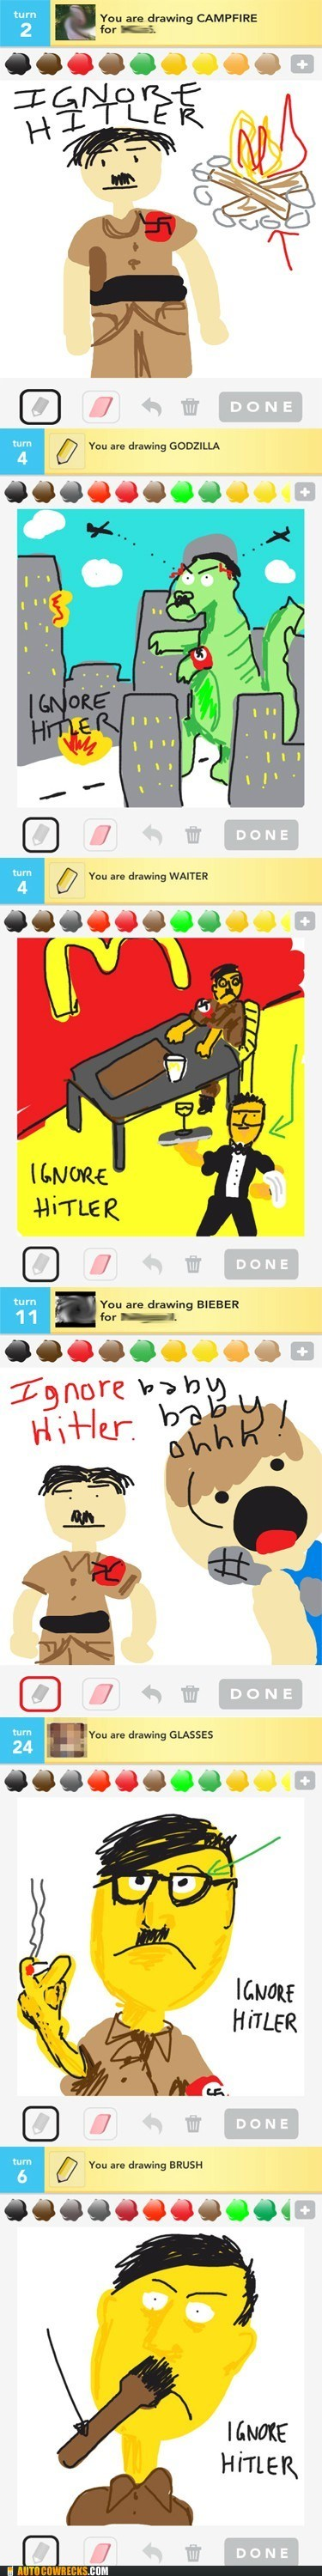 Ignoring Hitler is All the Rage